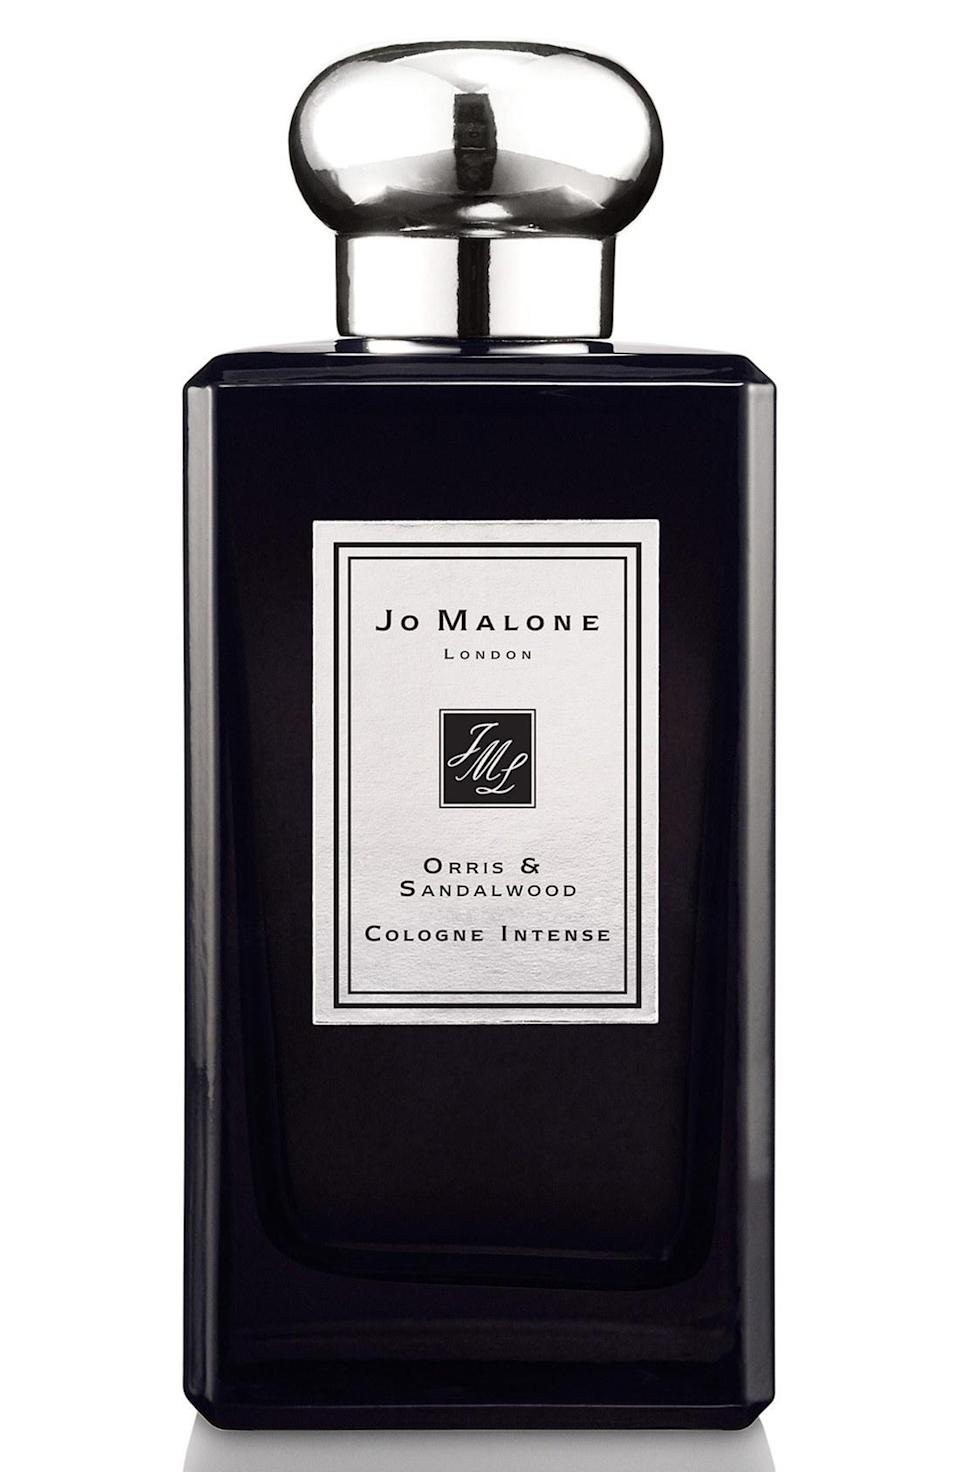 """<p>This newly-launched scent from the storied British house features a contemporary and beguiling blend of violet, orris, and sandalwood. Warm, sensual, and subtly spicy, consider this a masculine floral scent – especially great for guys who aren't afraid to push boundaries a bit. <b><a href=""""http://www.jomalone.com/product/3551/38740/Fragrances/Colognes/Orris-Sandalwood-Cologne-Intense"""" rel=""""nofollow noopener"""" target=""""_blank"""" data-ylk=""""slk:Jo Malone Orris & Sandalwood ($170)"""" class=""""link rapid-noclick-resp"""">Jo Malone Orris & Sandalwood ($170)</a></b></p>"""